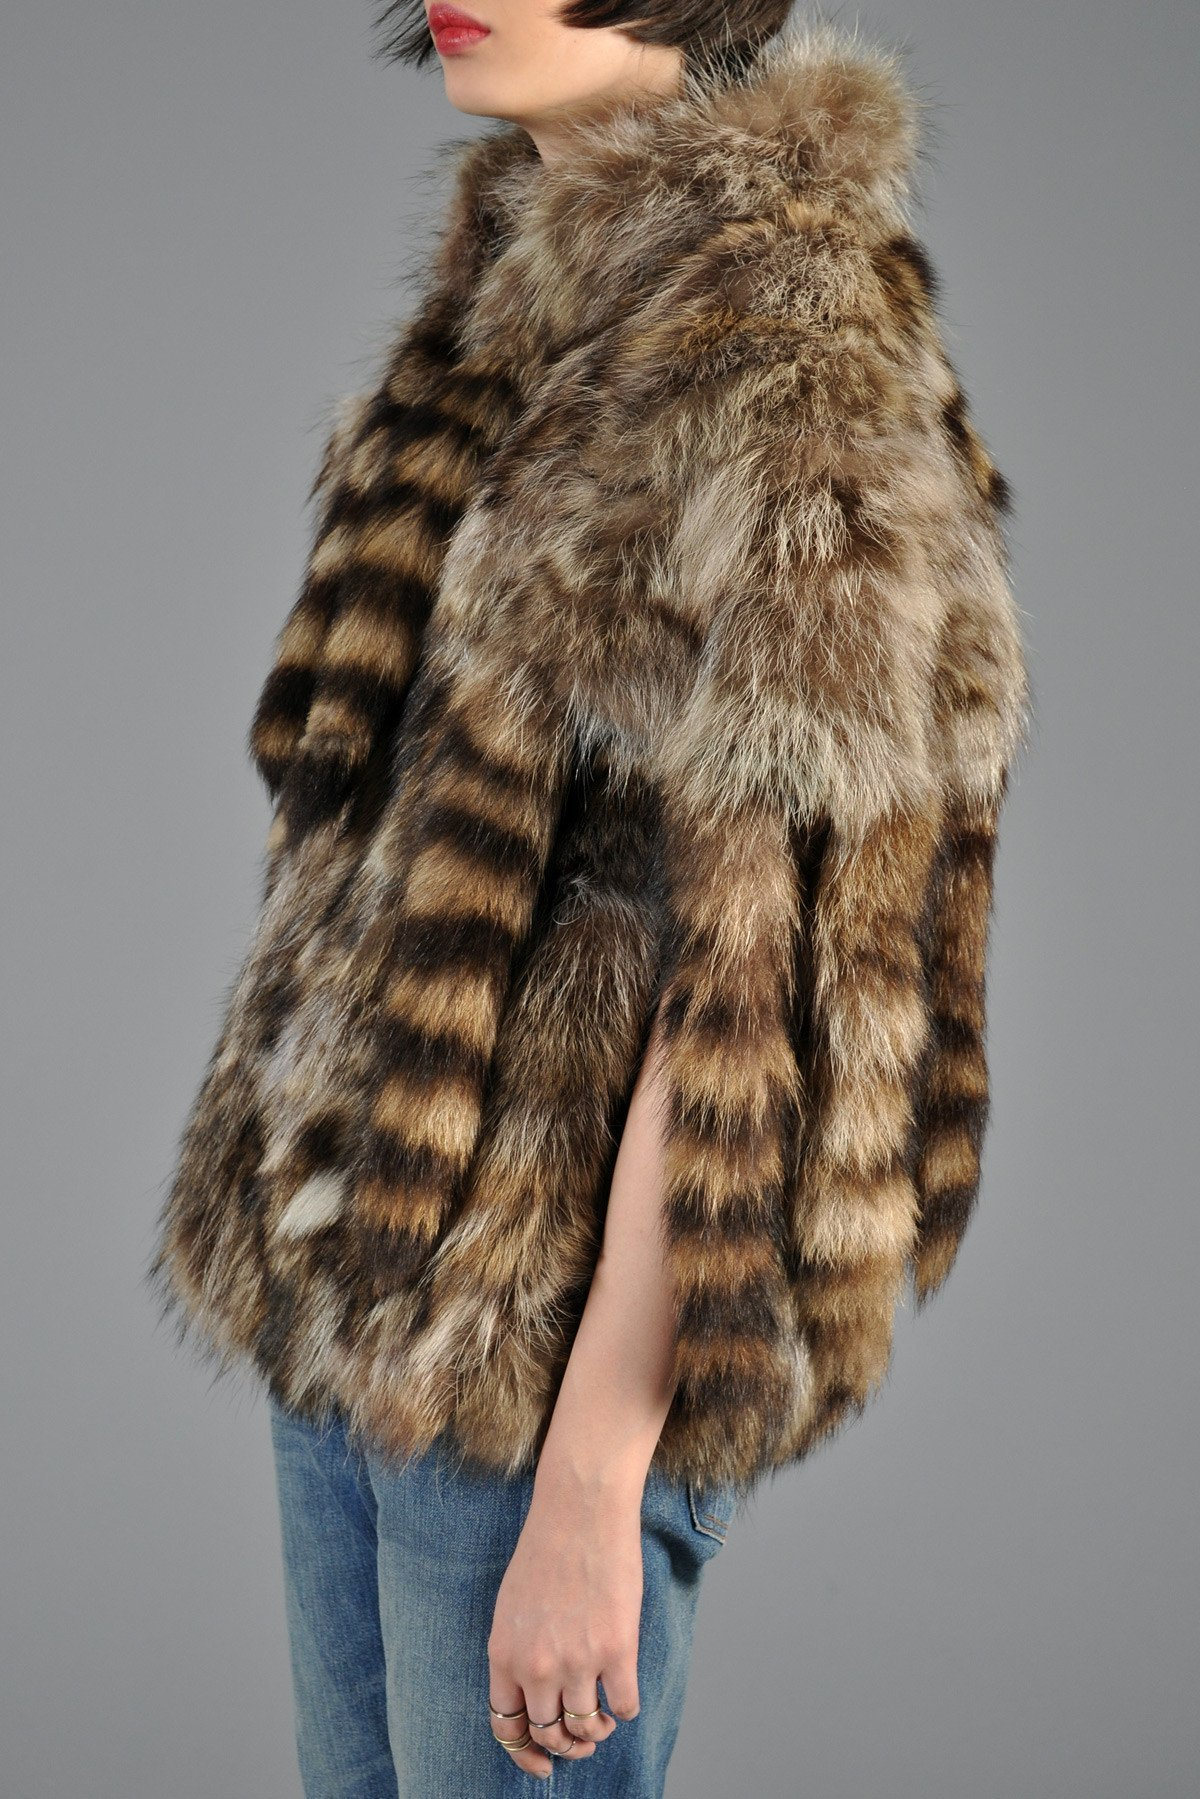 The Best 70S Raccoon Tail Shaggy Fringe Vest Bustown Modern Pictures